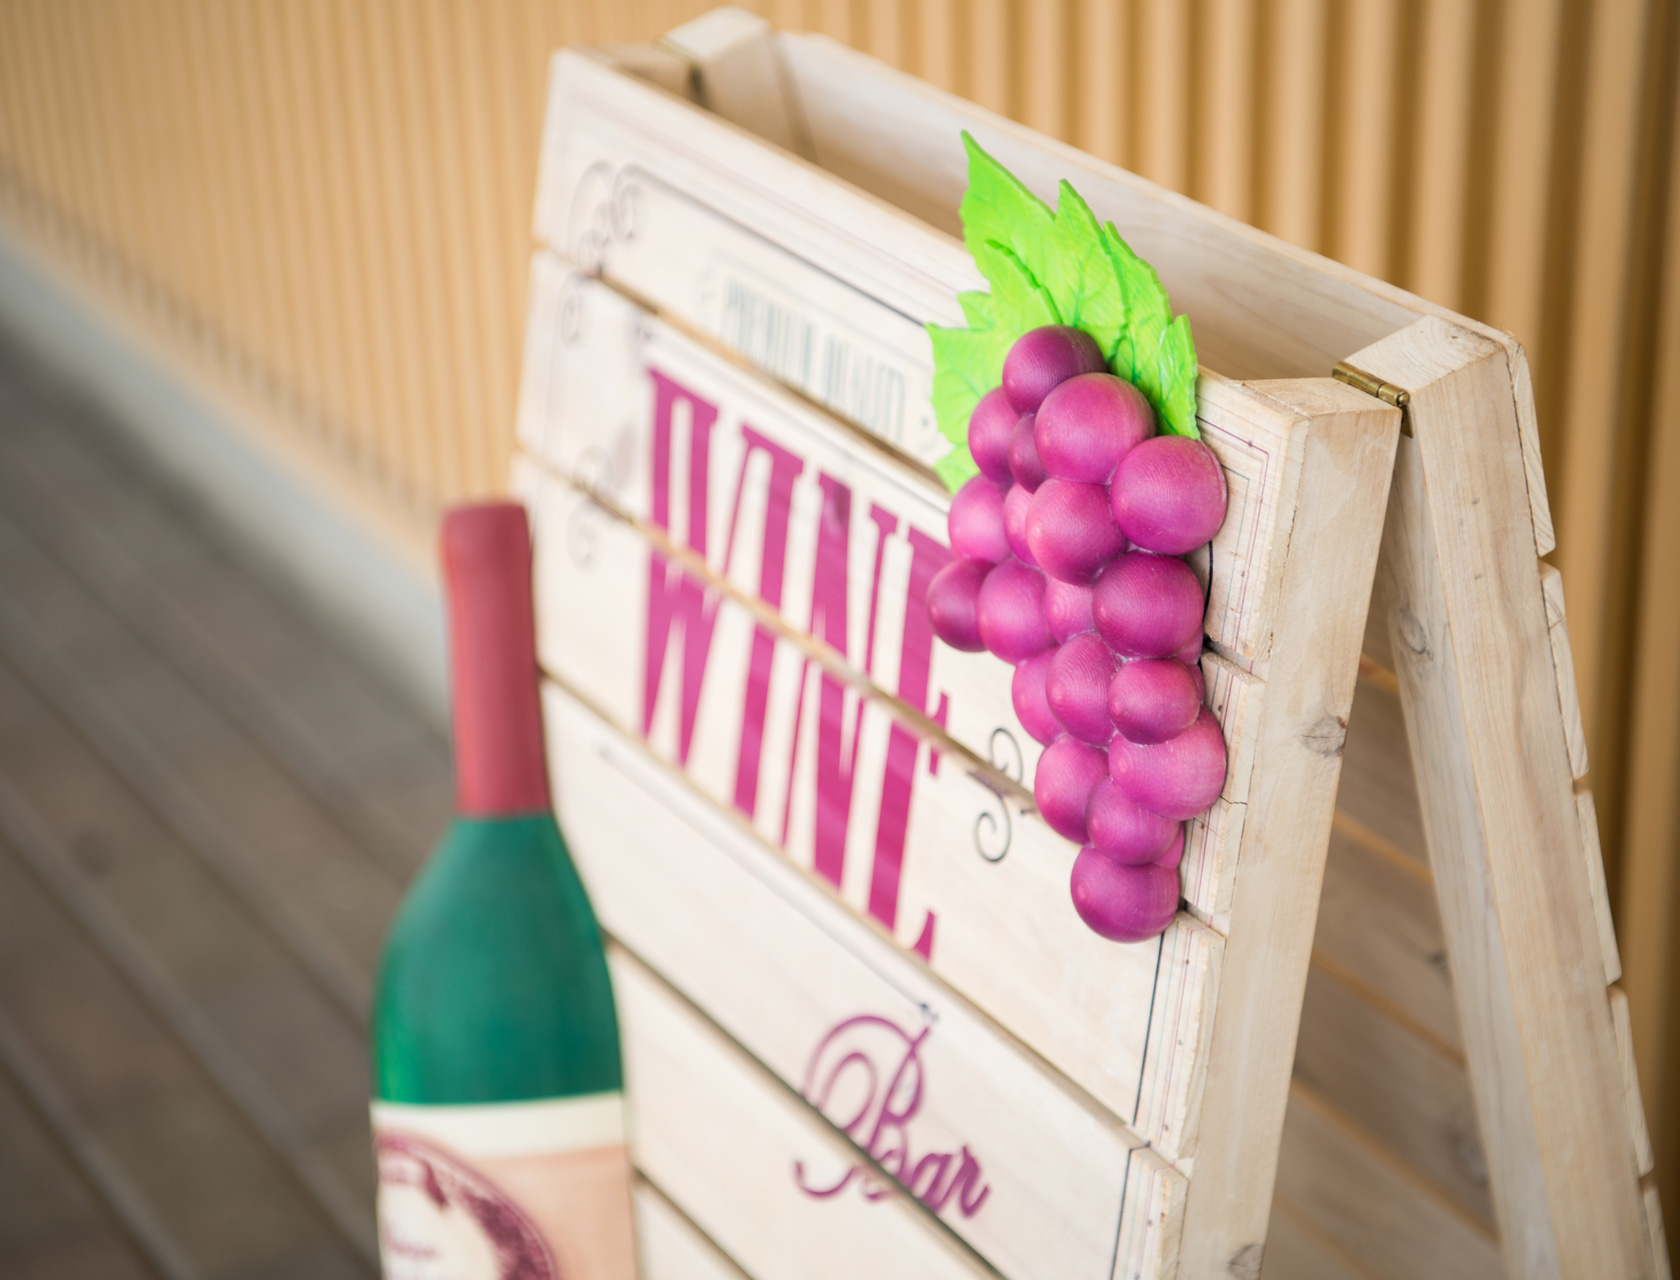 Stand sign (Wine shop)